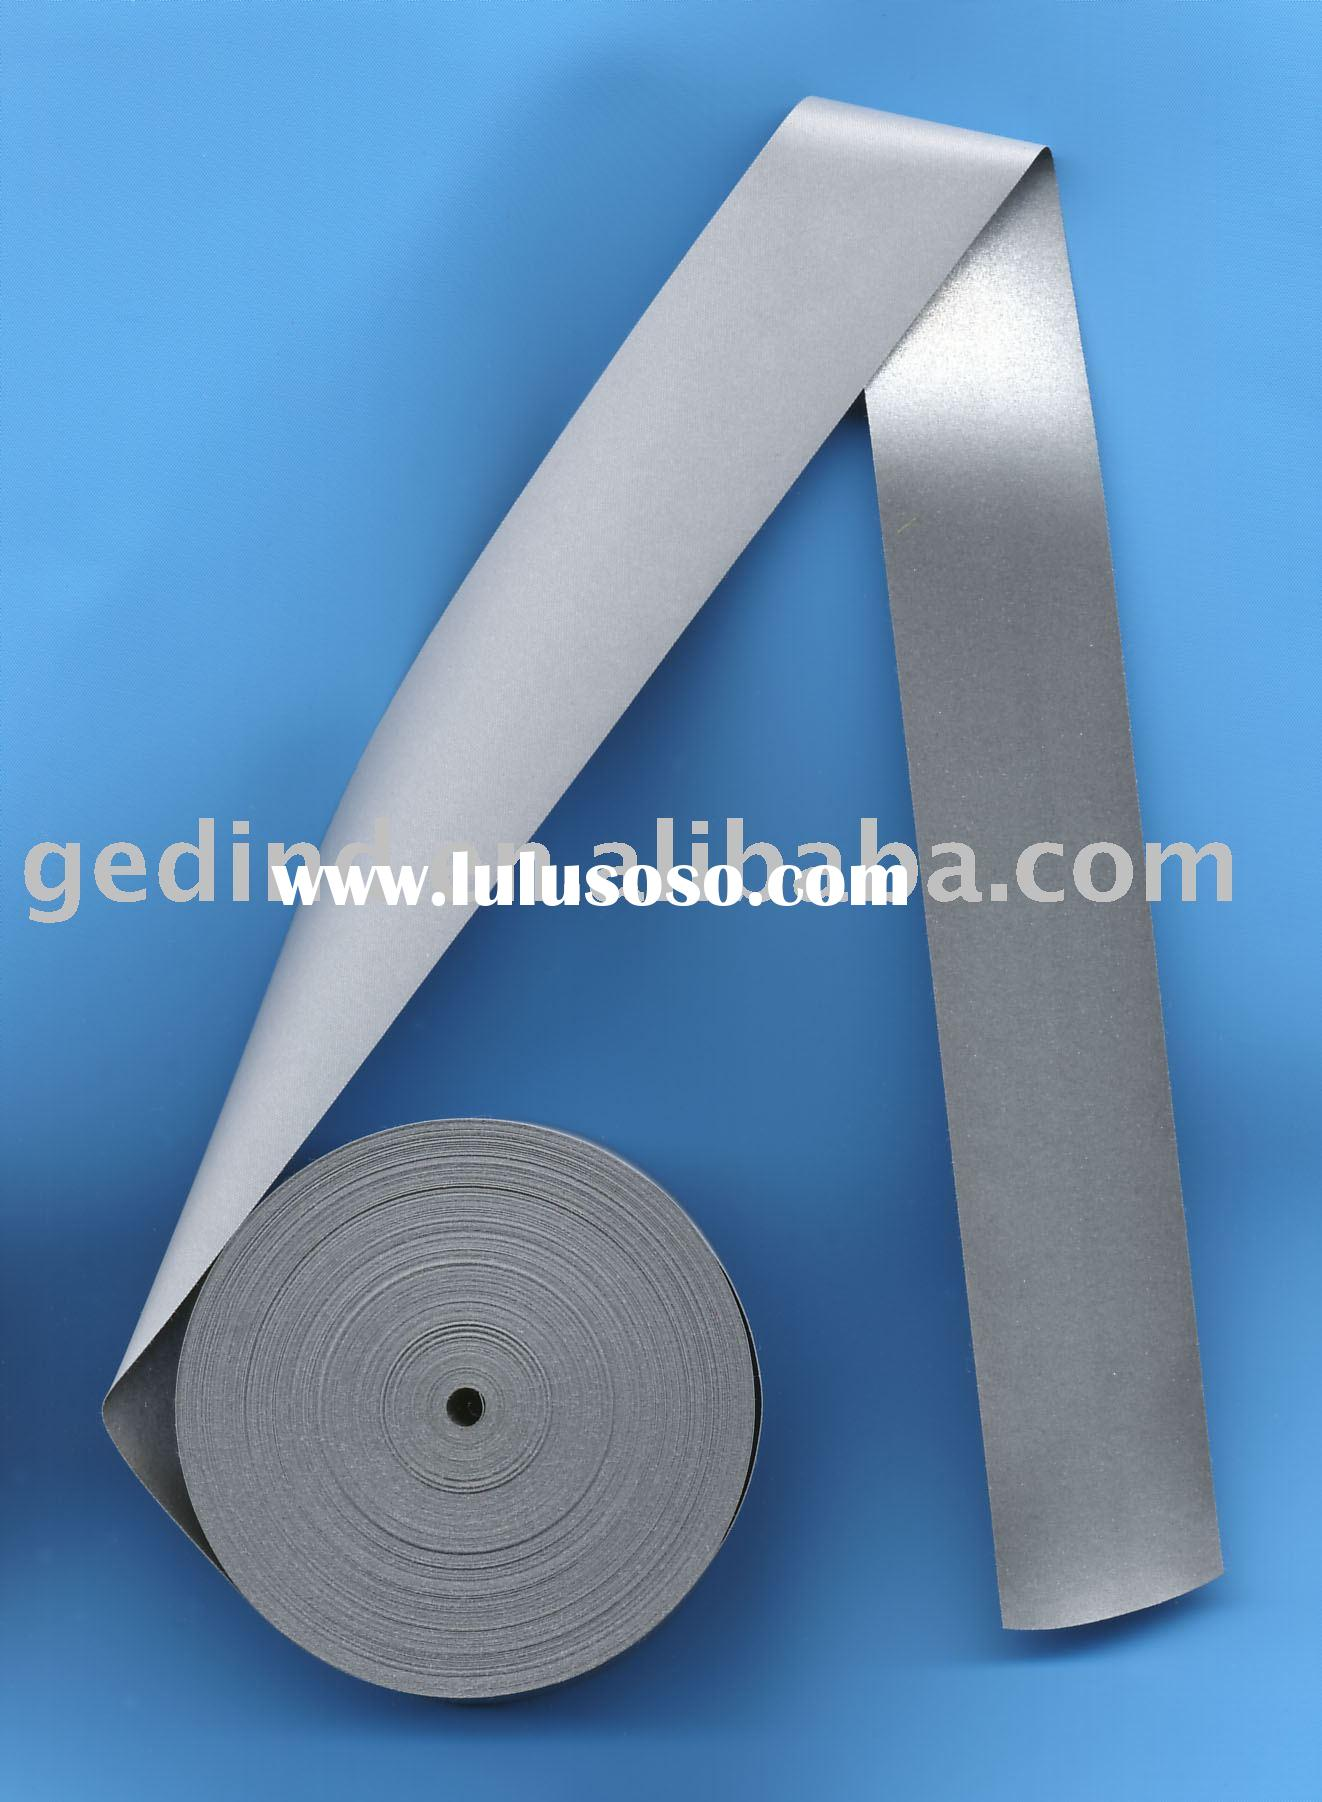 SHINY SILVER REFLECTIVE POLYESTER FABRIC CUT TAPE